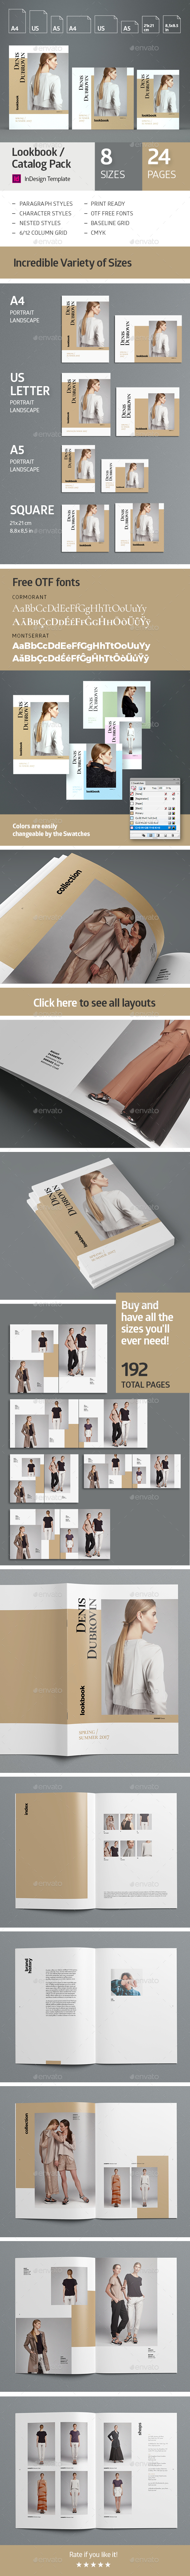 Multisize Lookbook / Catalog Pack - Catalogs Brochures